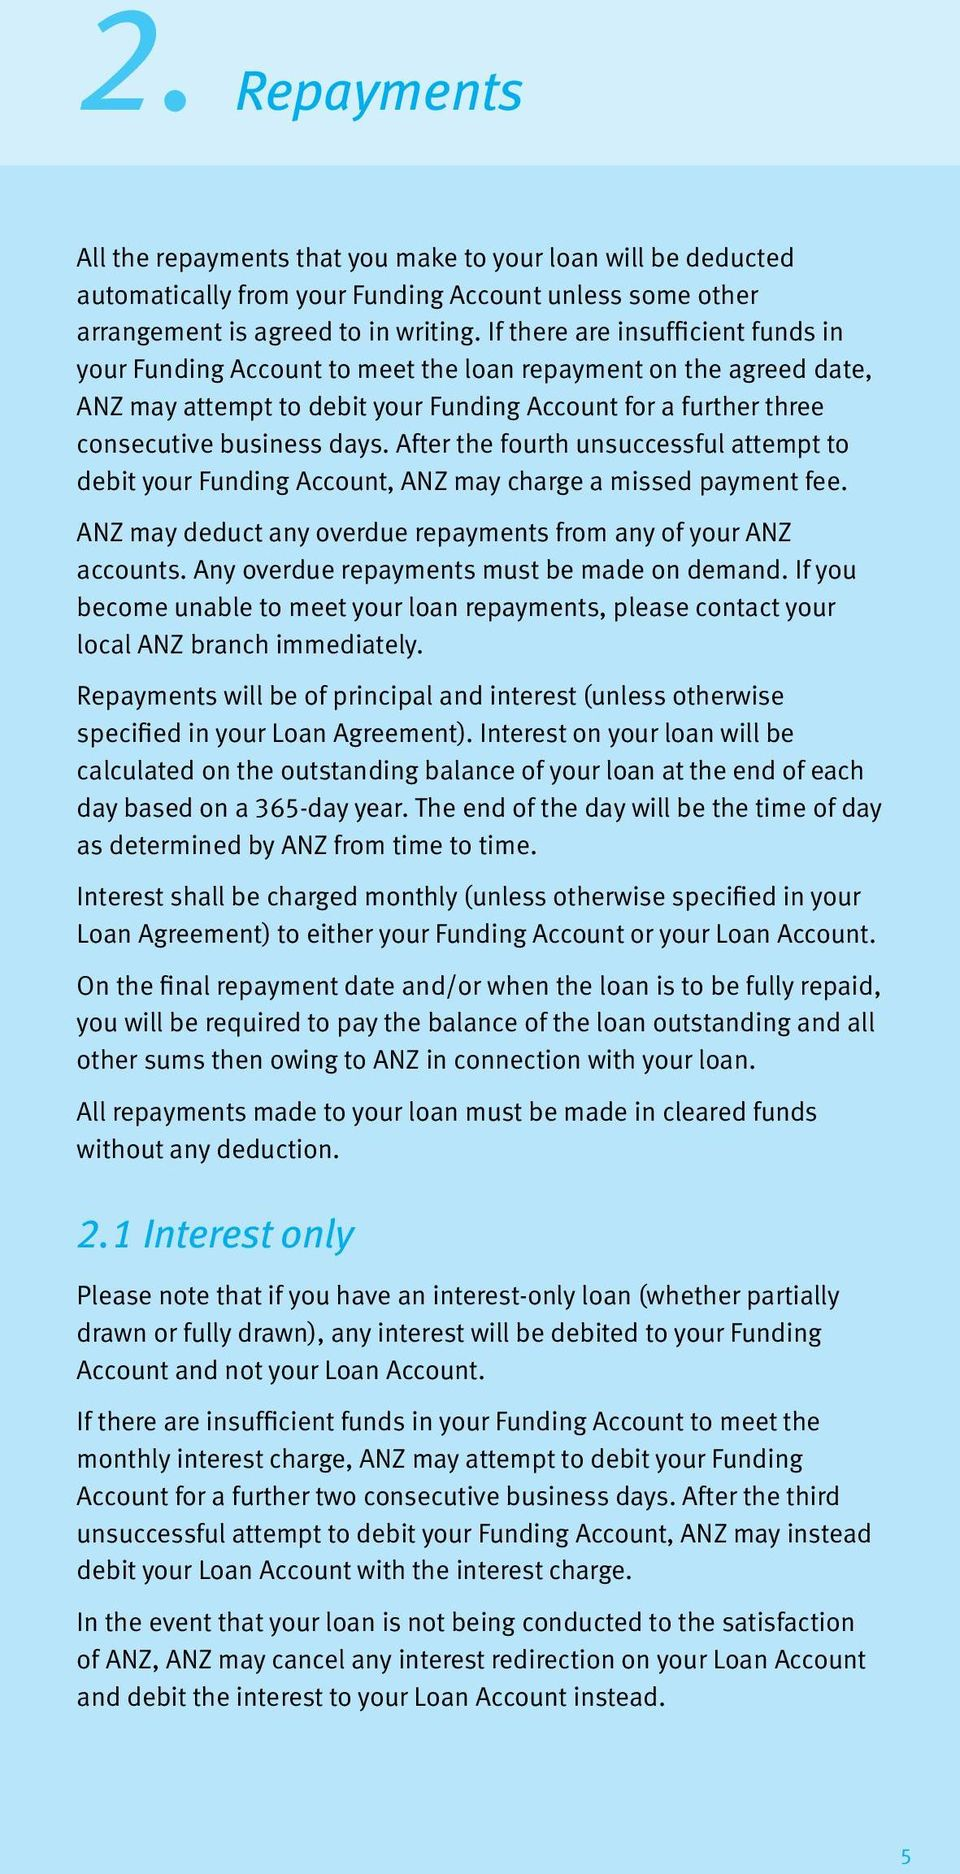 After the fourth unsuccessful attempt to debit your Funding Account, ANZ may charge a missed payment fee. ANZ may deduct any overdue repayments from any of your ANZ accounts.